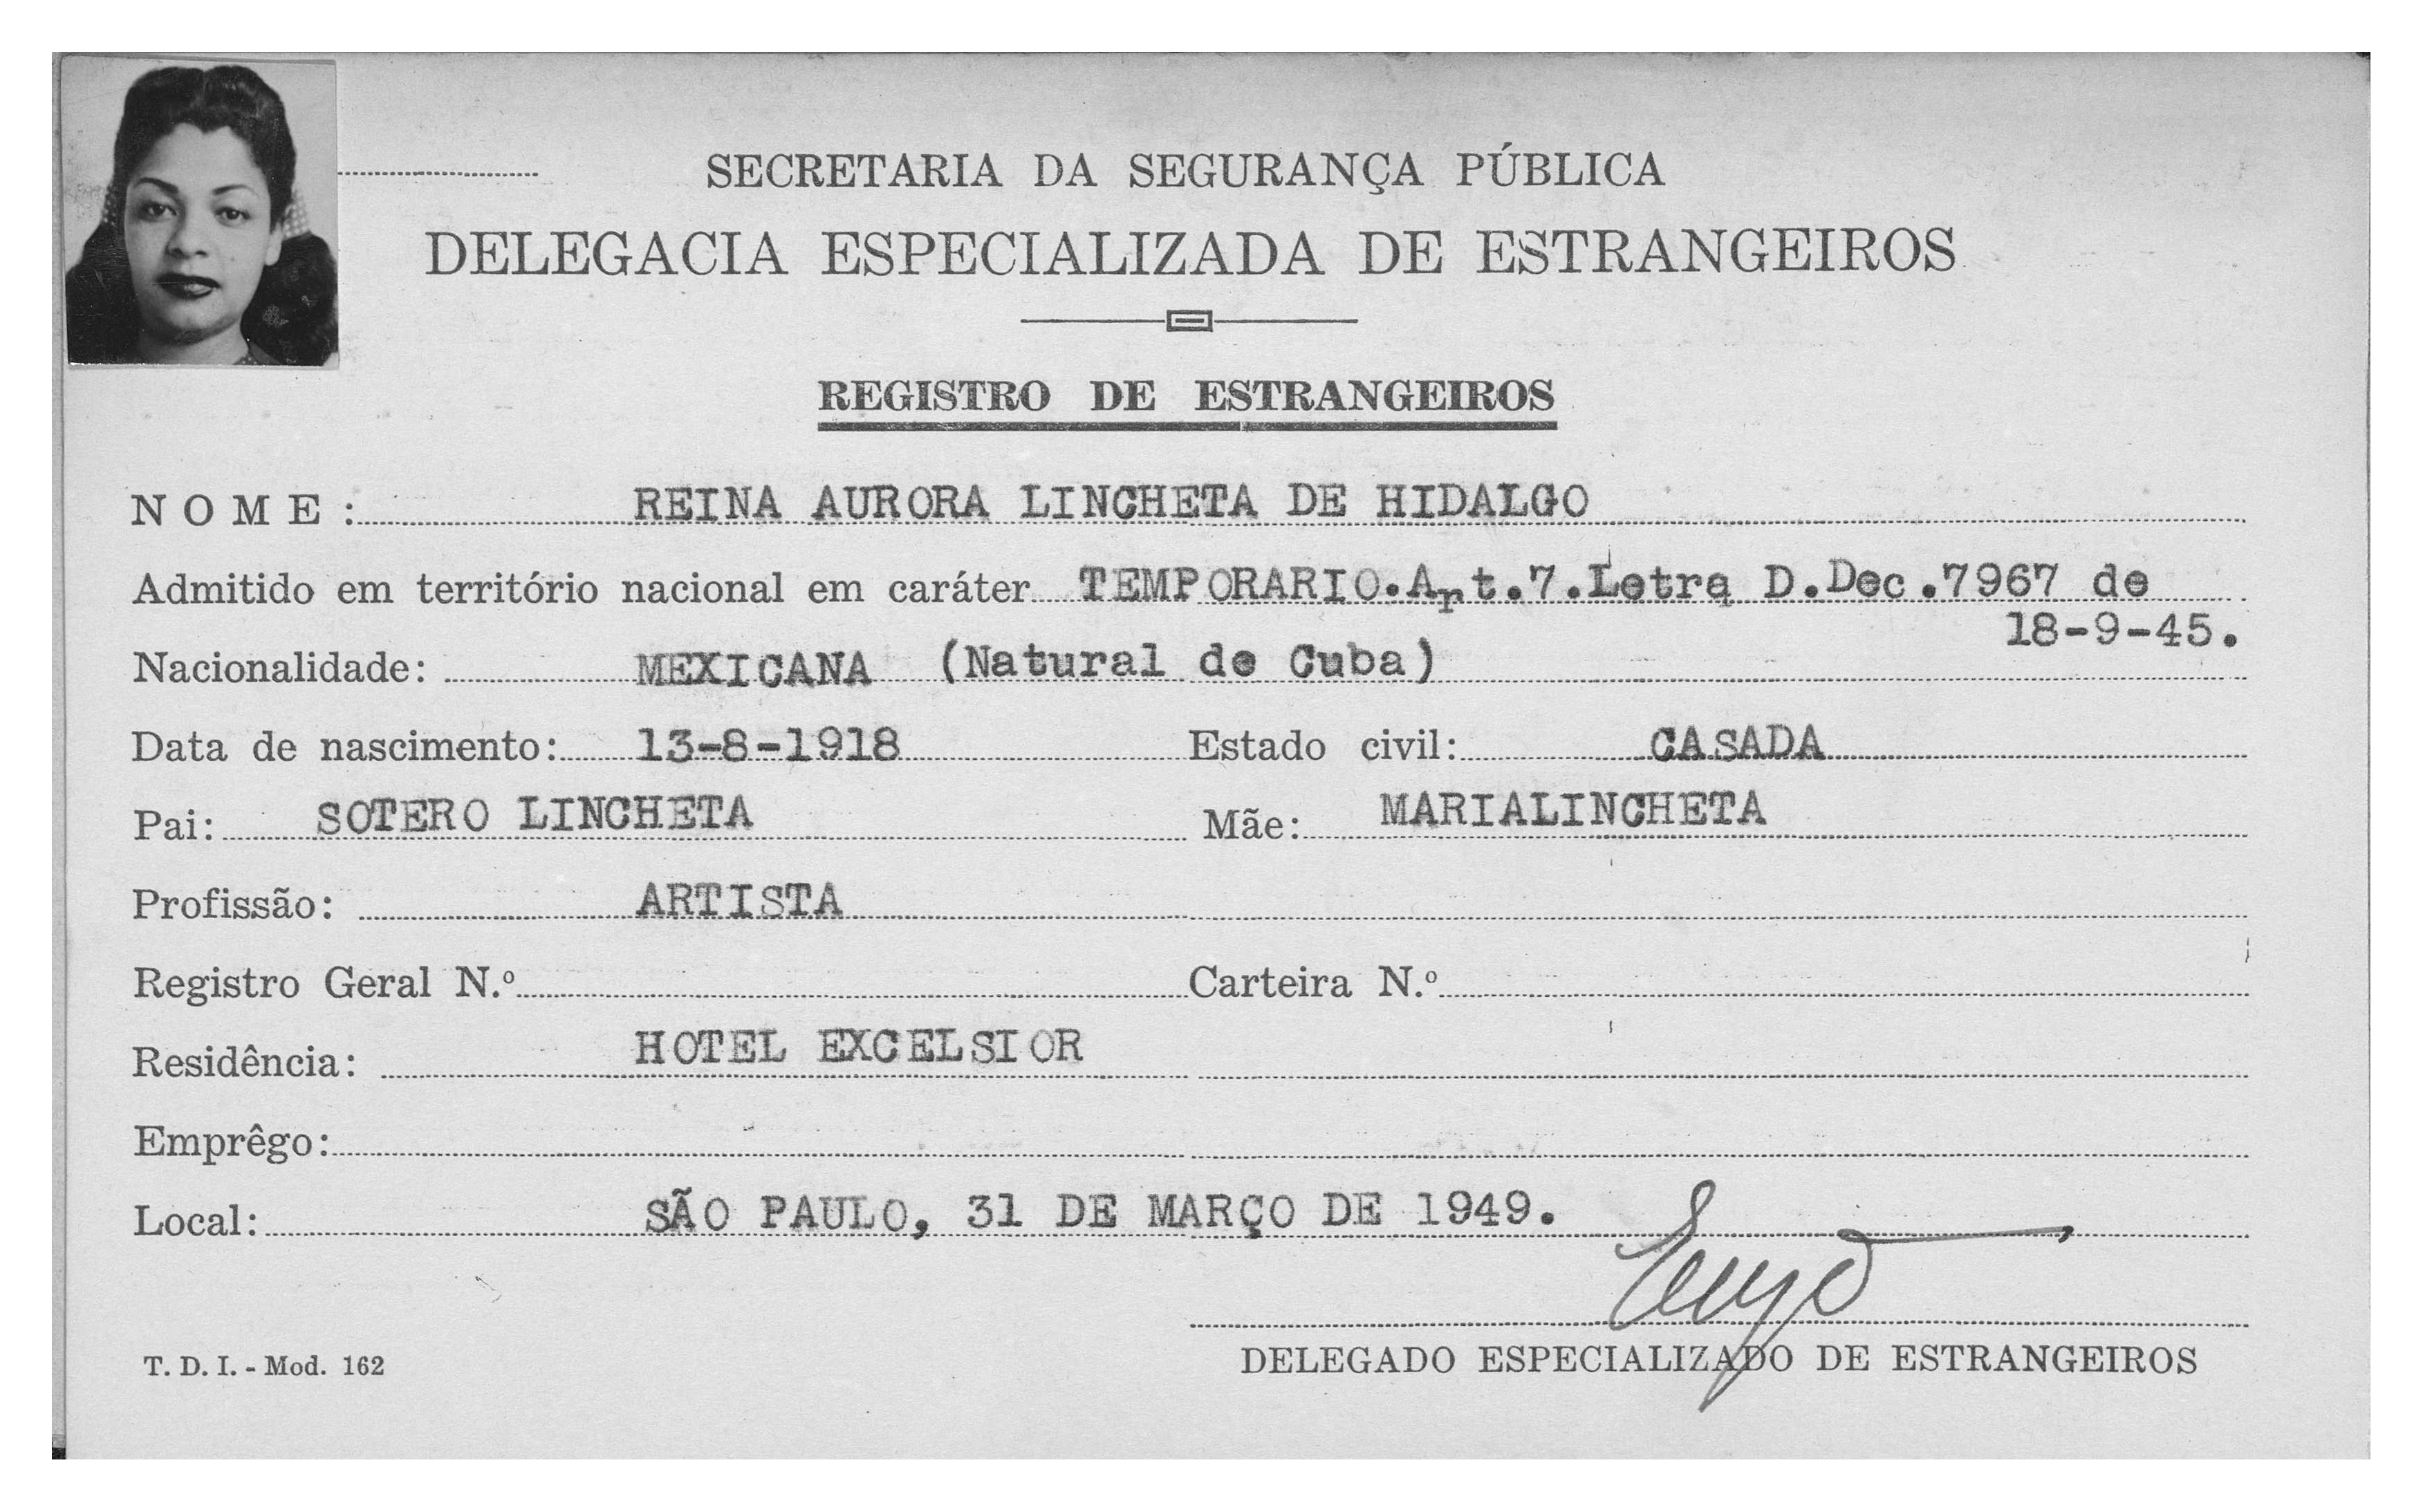 REina-1949-03-registro-de-estrangeiro-SP-01-copy.jpg